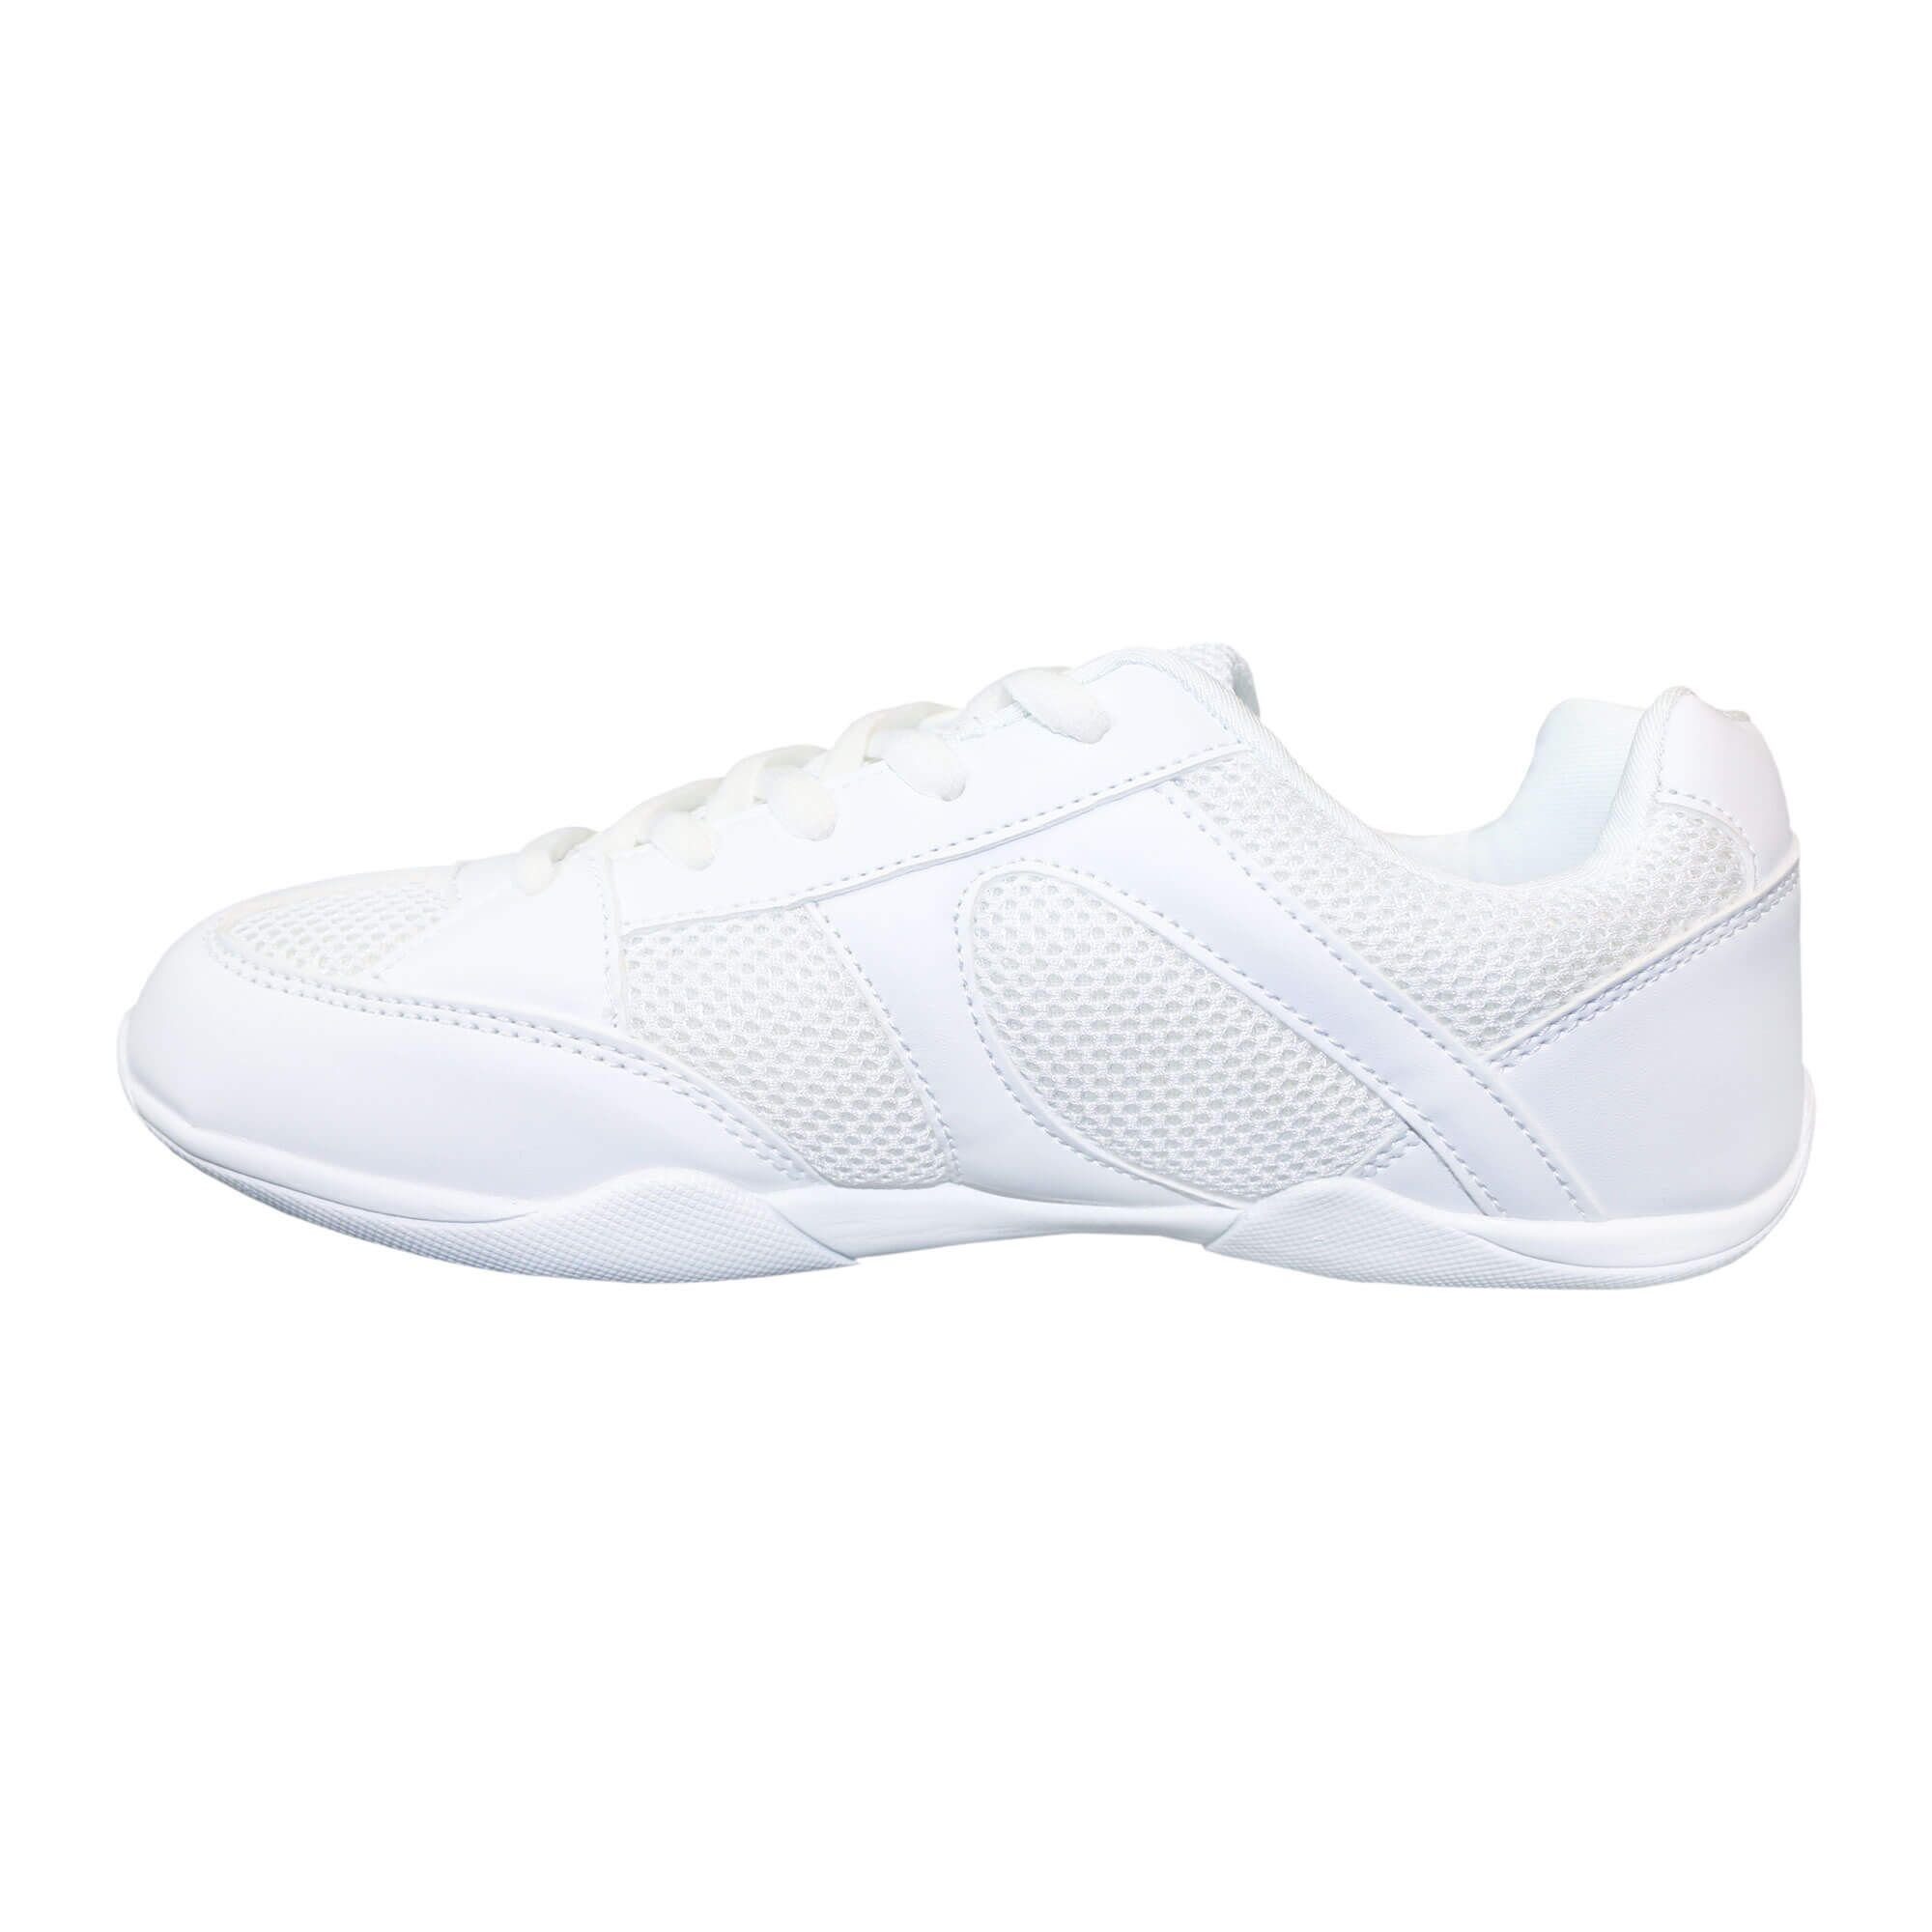 Danzcue Aurora Cheer Shoes